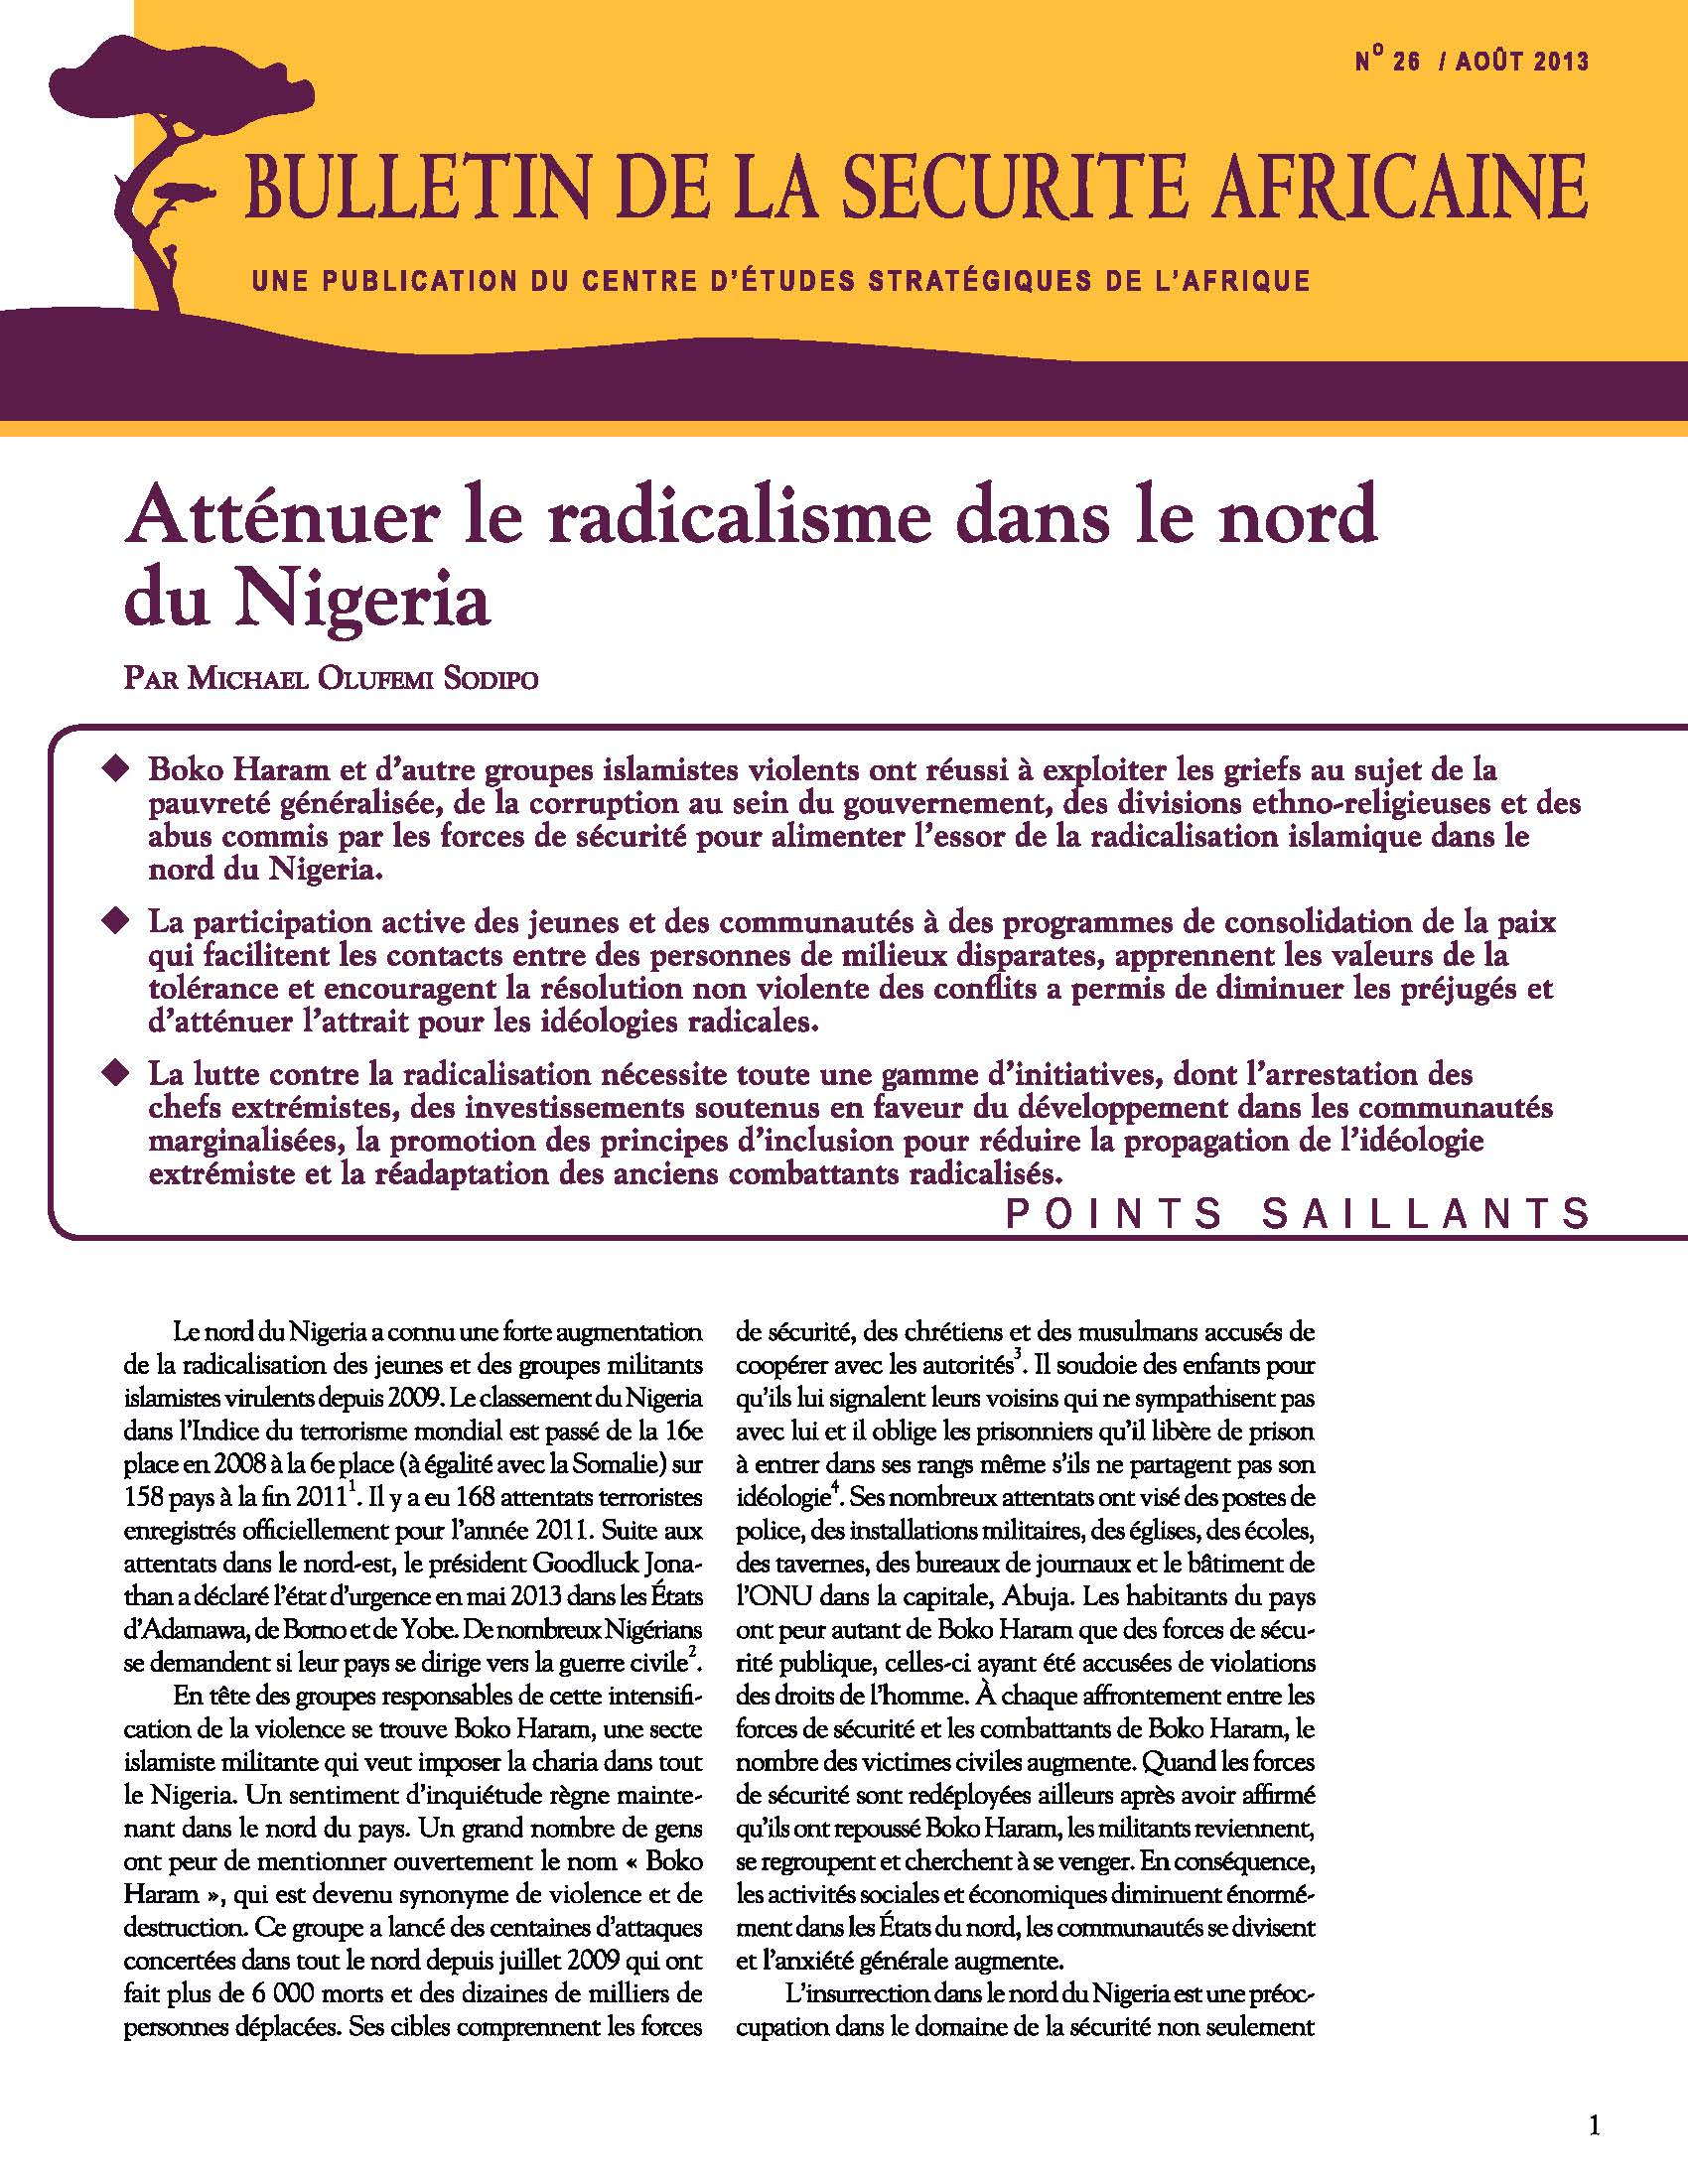 Africa-Security-Brief-No.-26-FR page 1